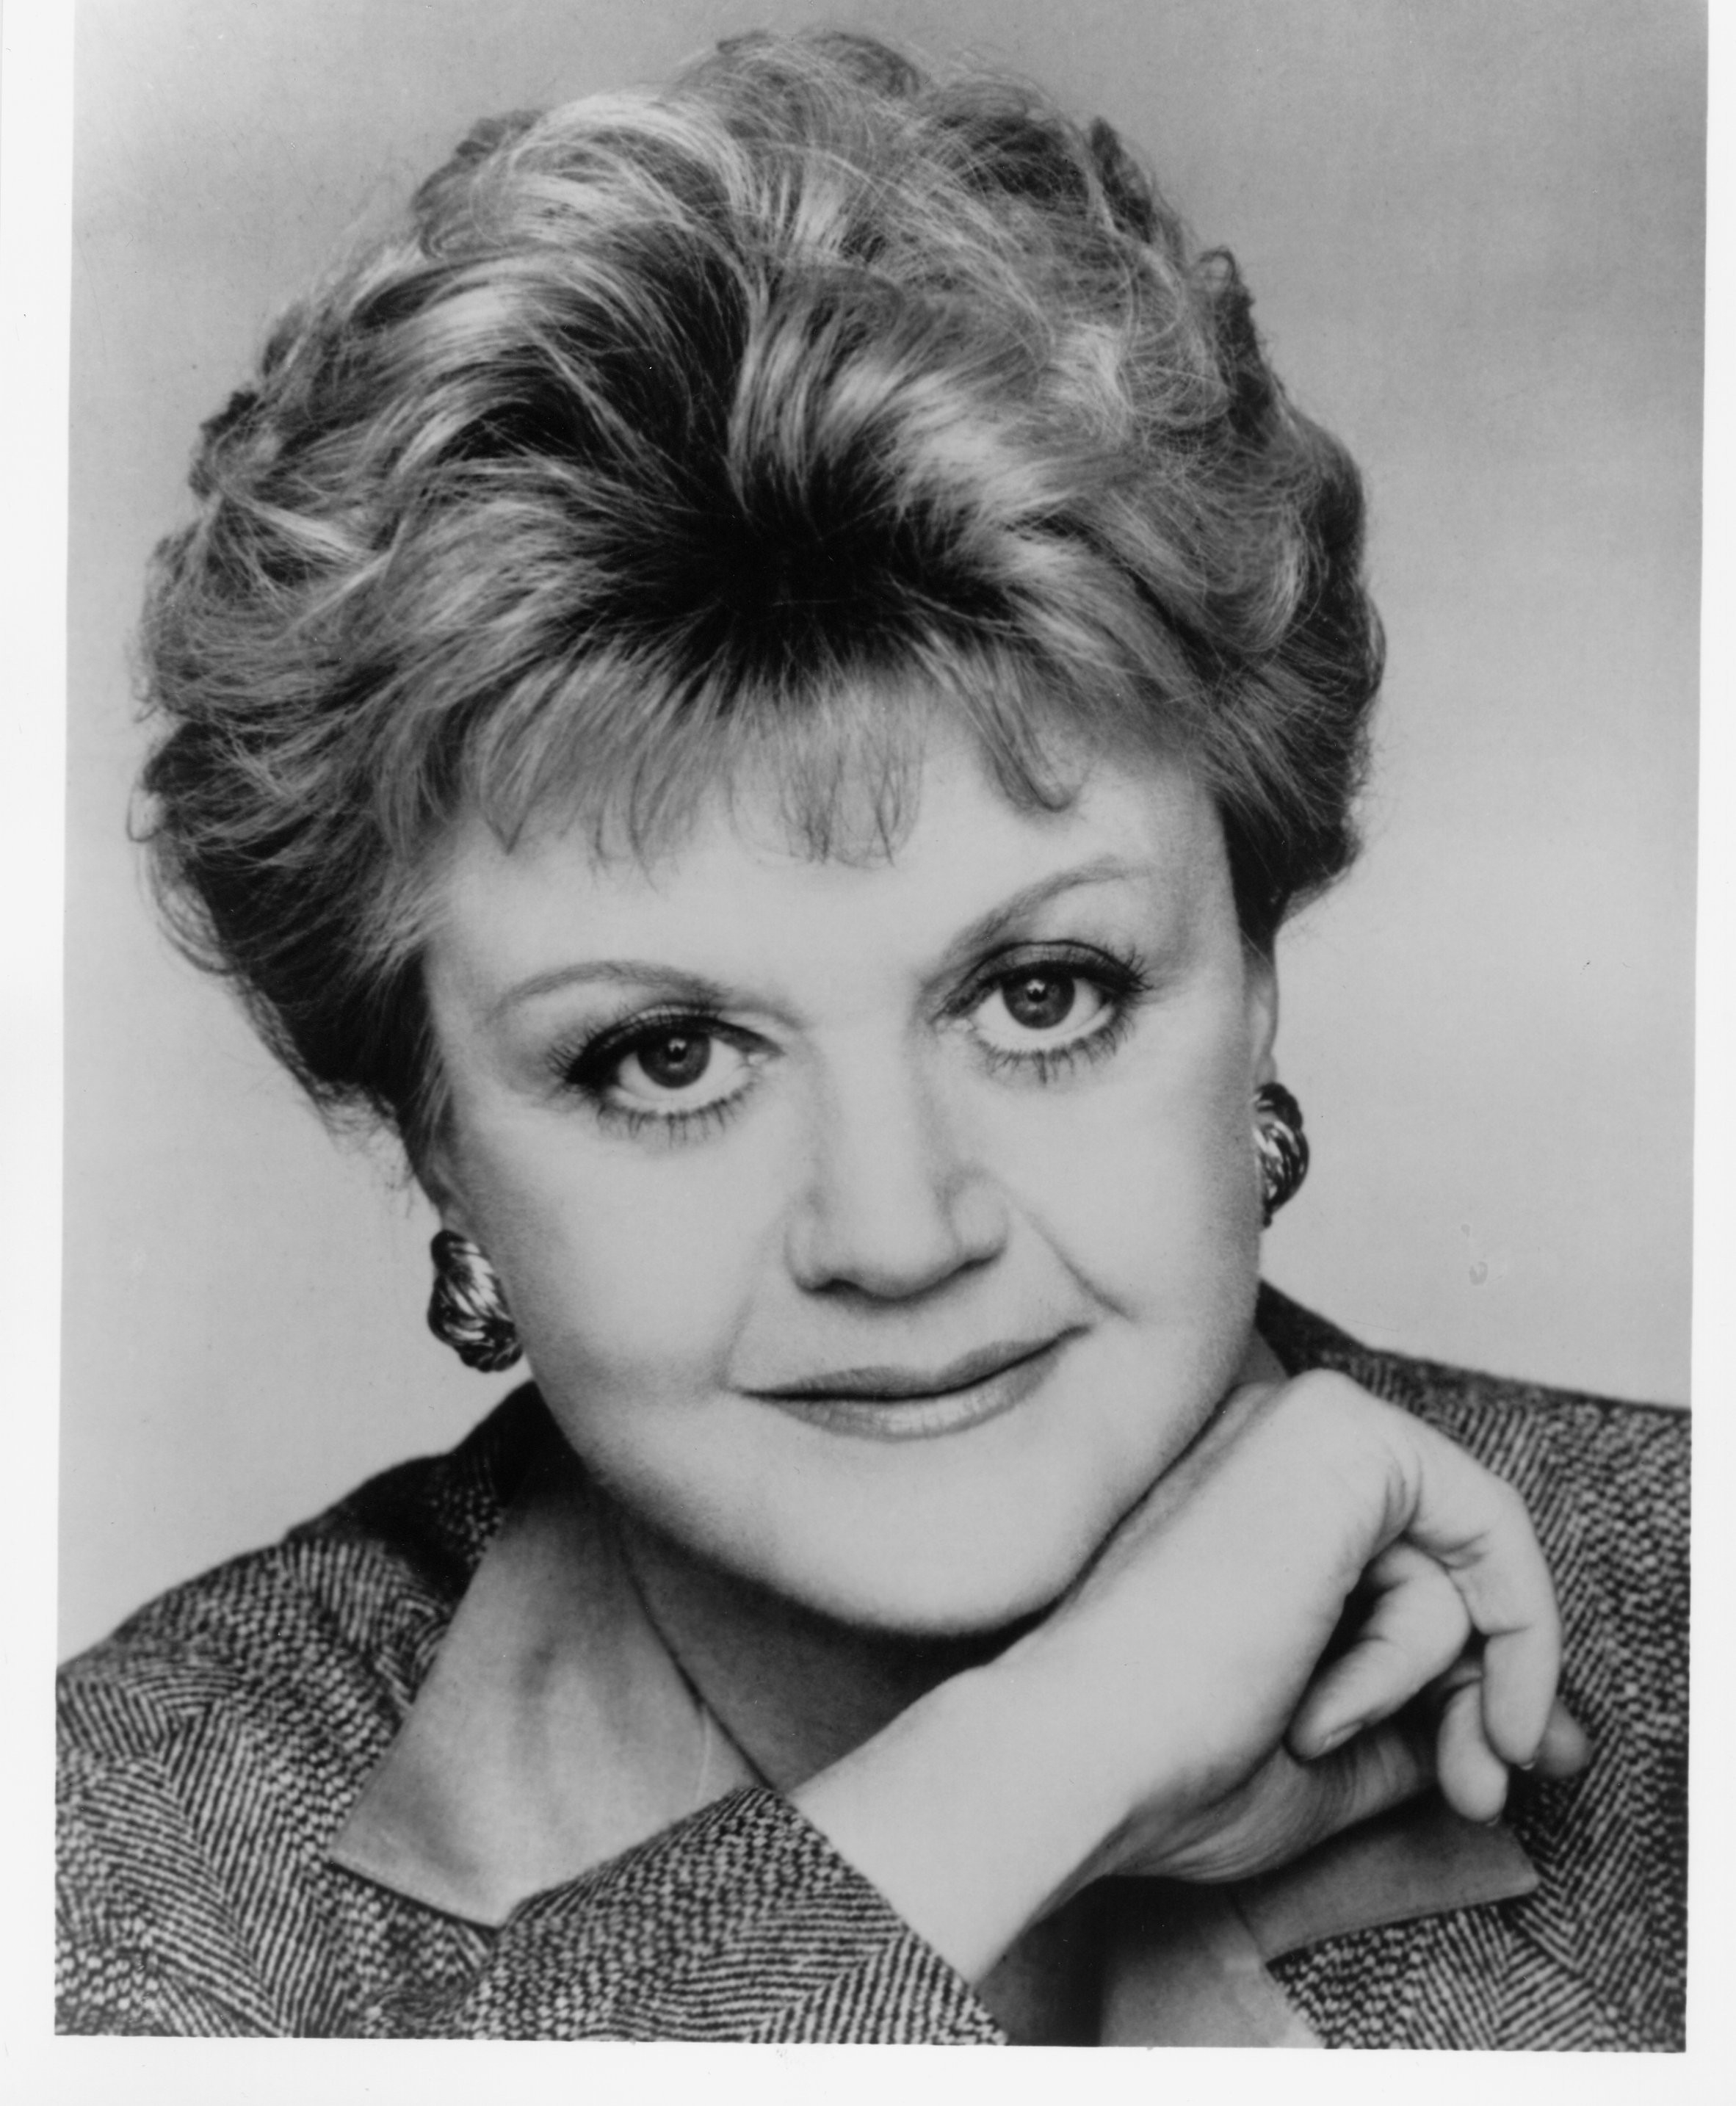 Angela Lansbury nudes (78 photos), Sexy, Fappening, Boobs, cameltoe 2020